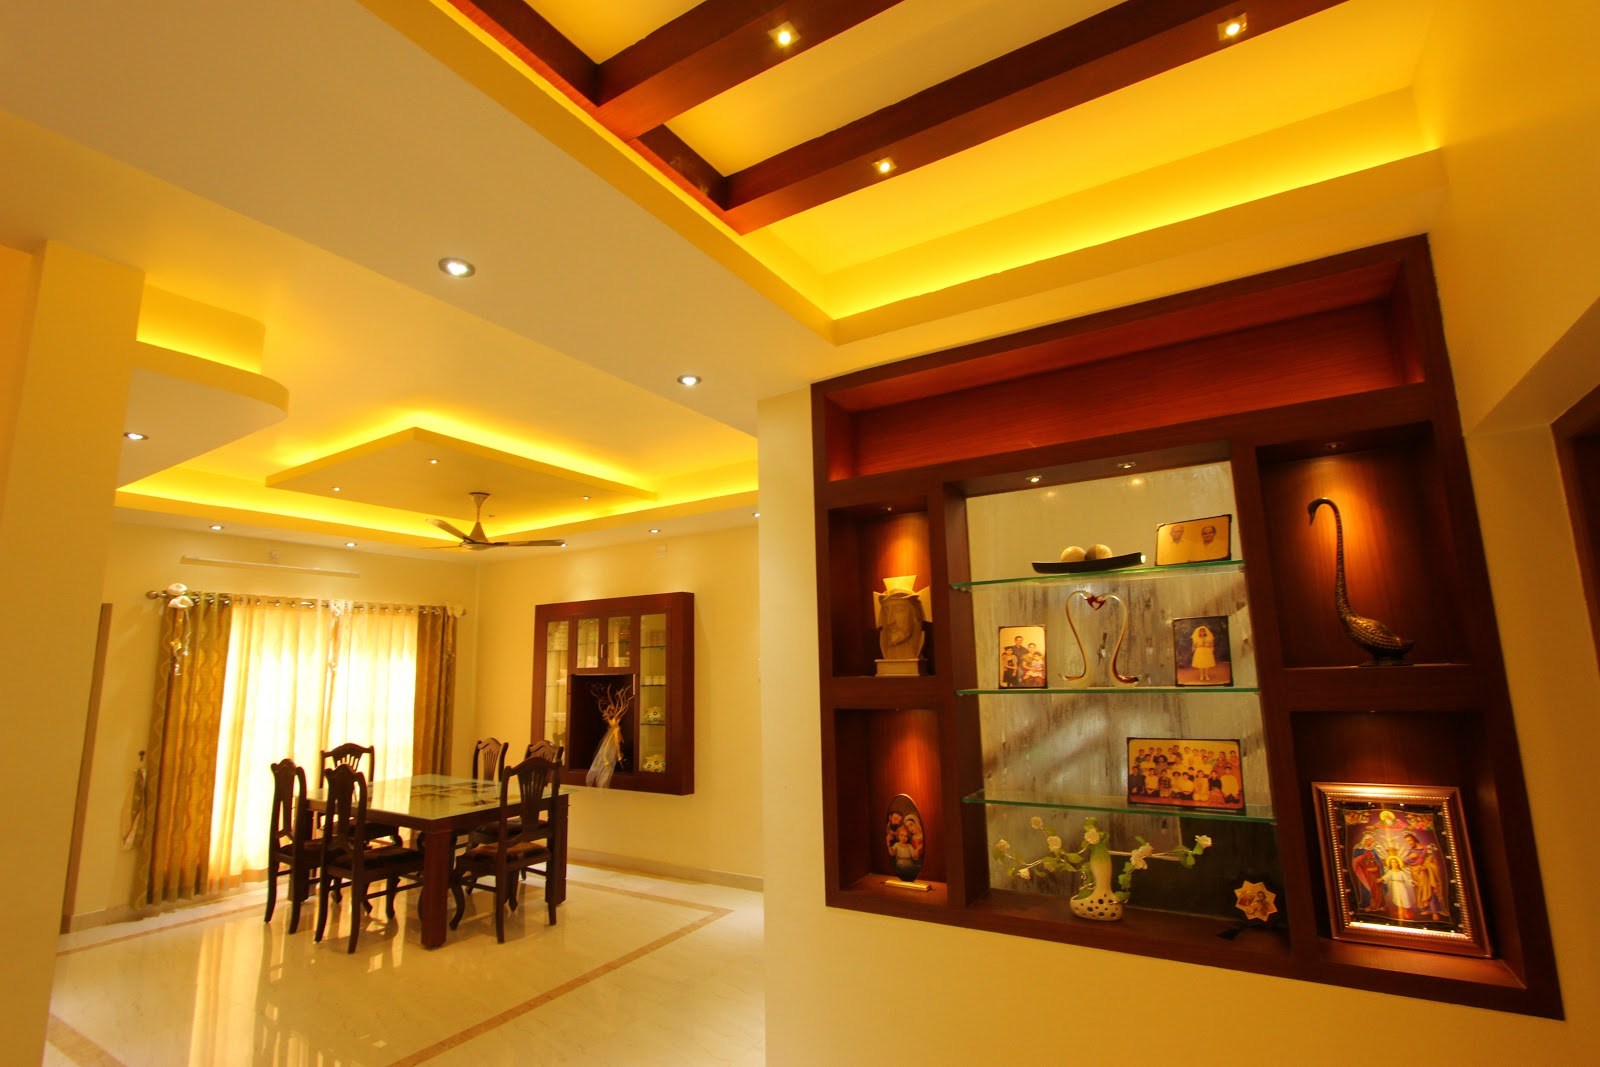 Shilpakala interiors award winning home interior design for House and home interior design